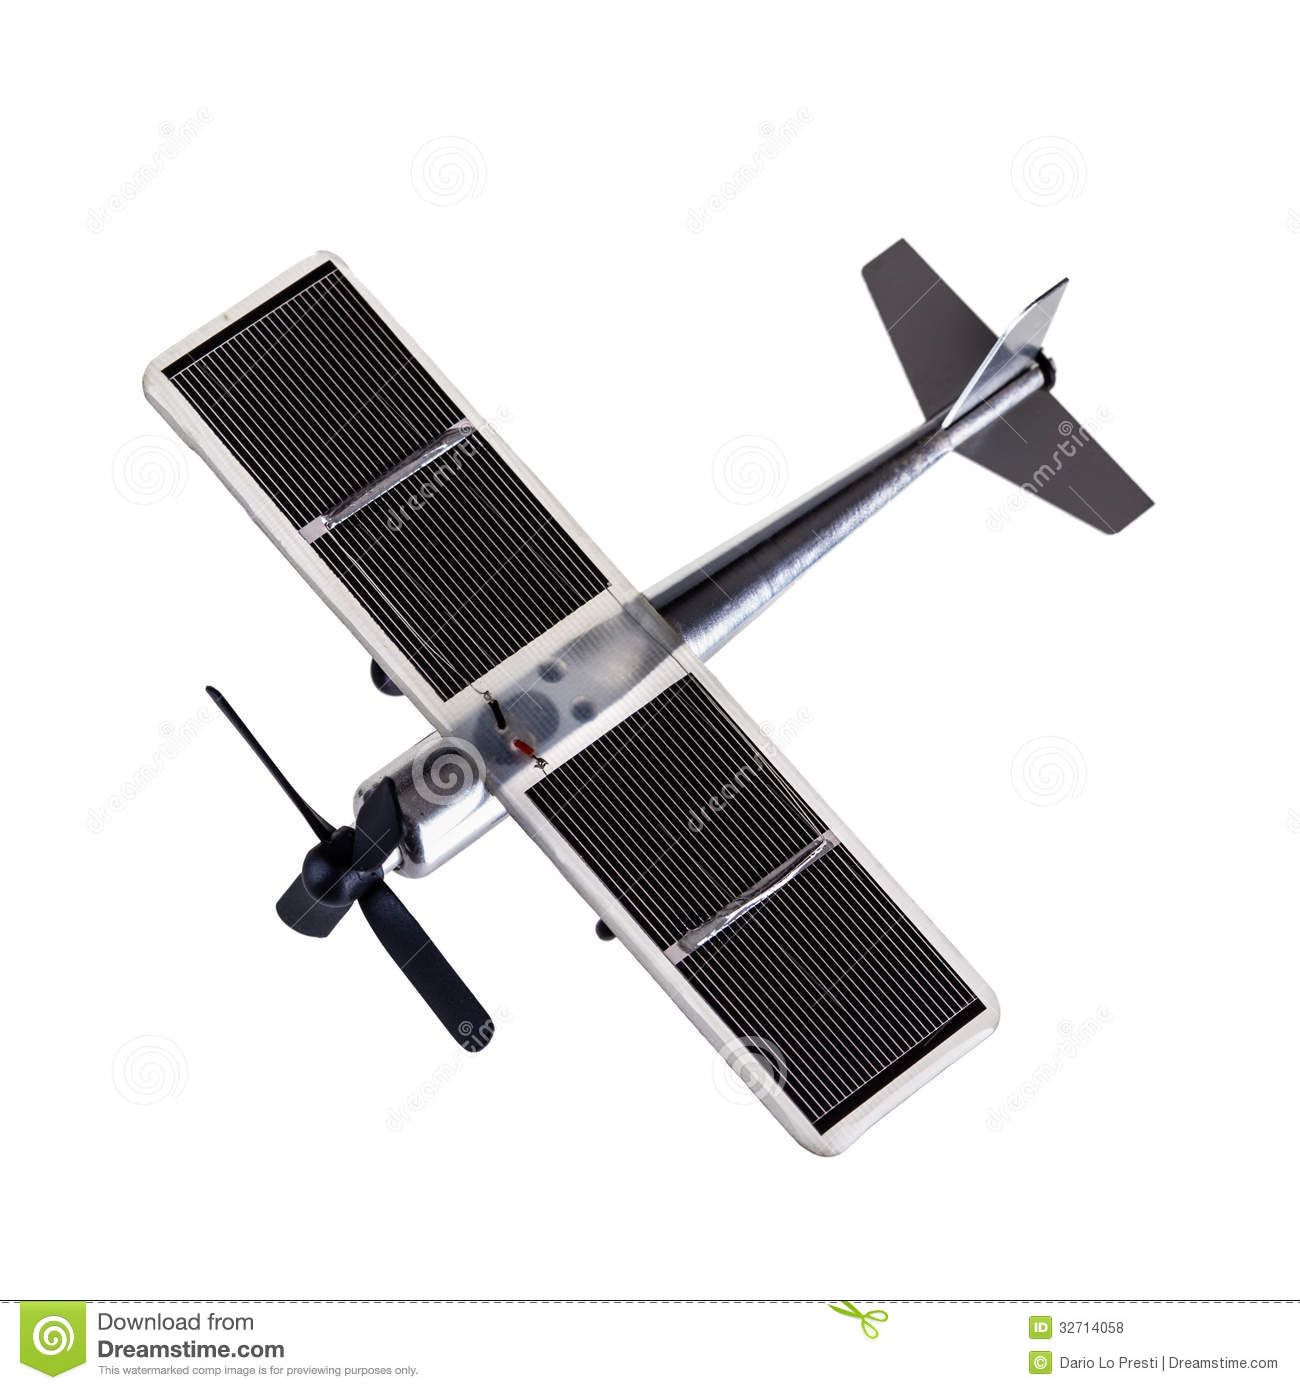 solar business plan in pakistan aeroplane